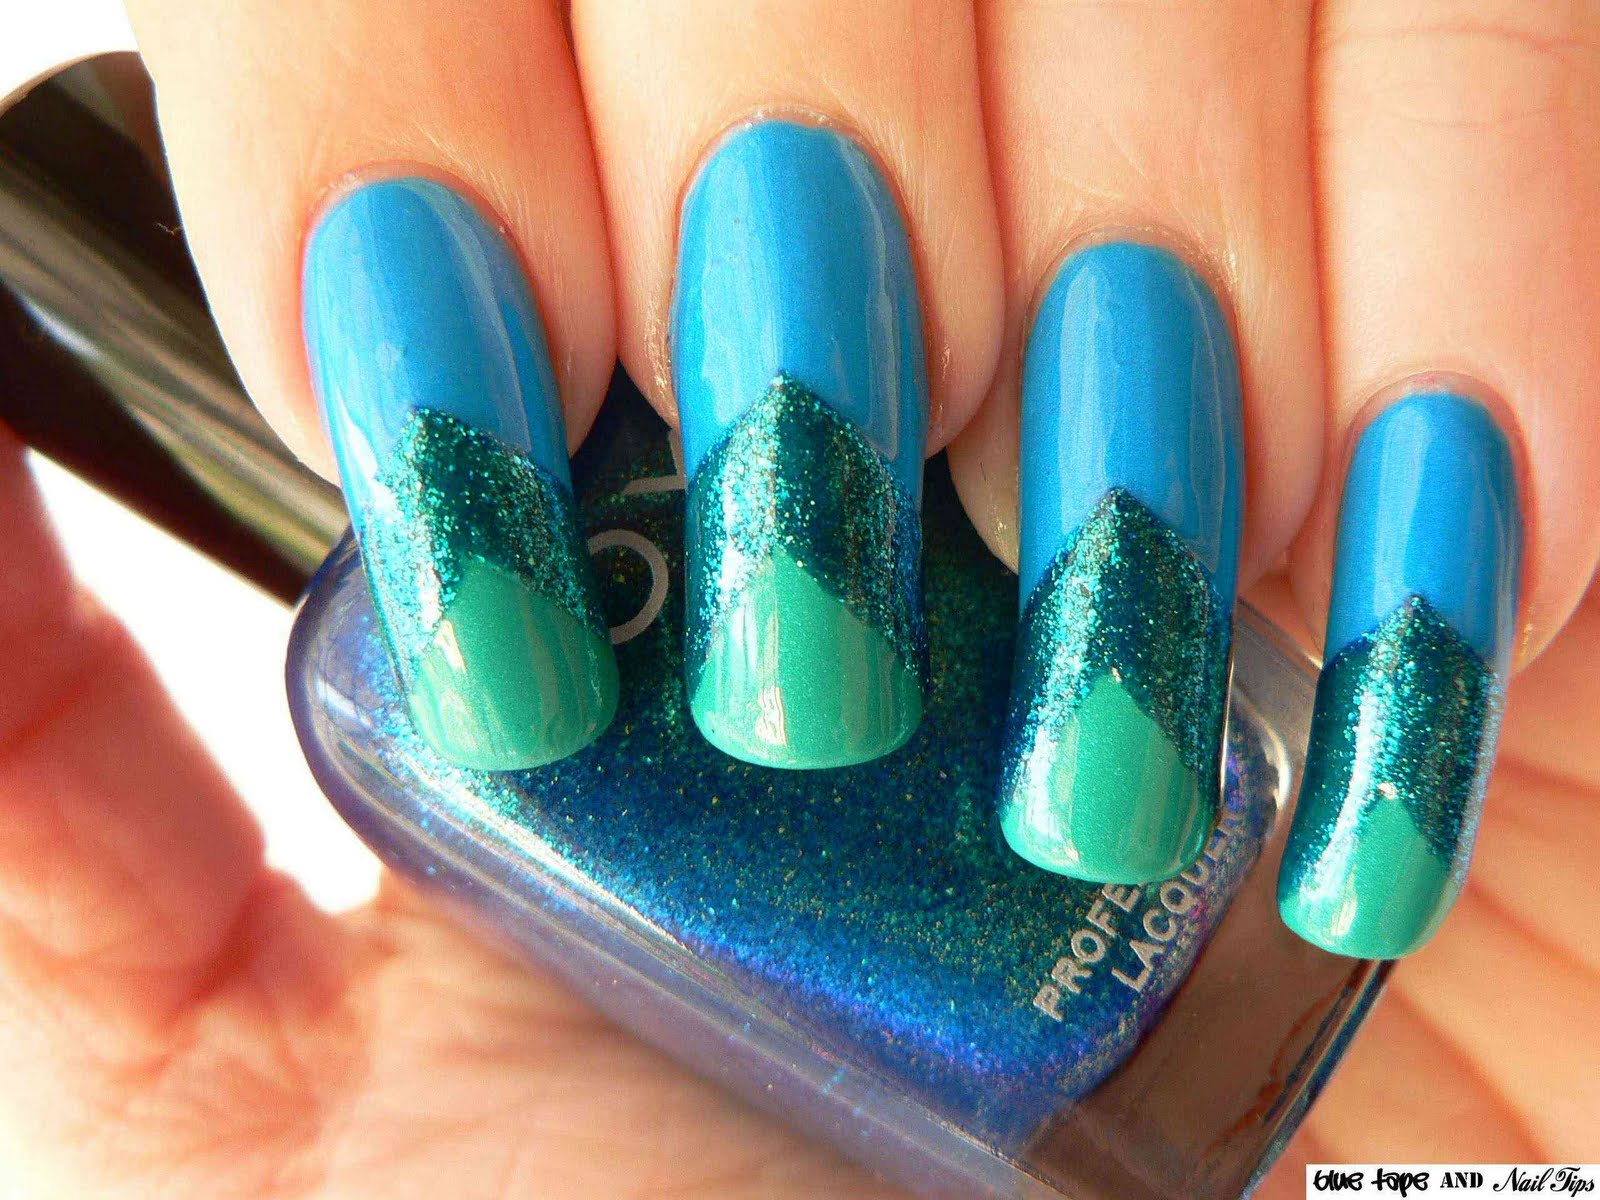 Blue tape and nail tips nd9 mermaid tails and fish scales nd9 mermaid tails and fish scales prinsesfo Choice Image